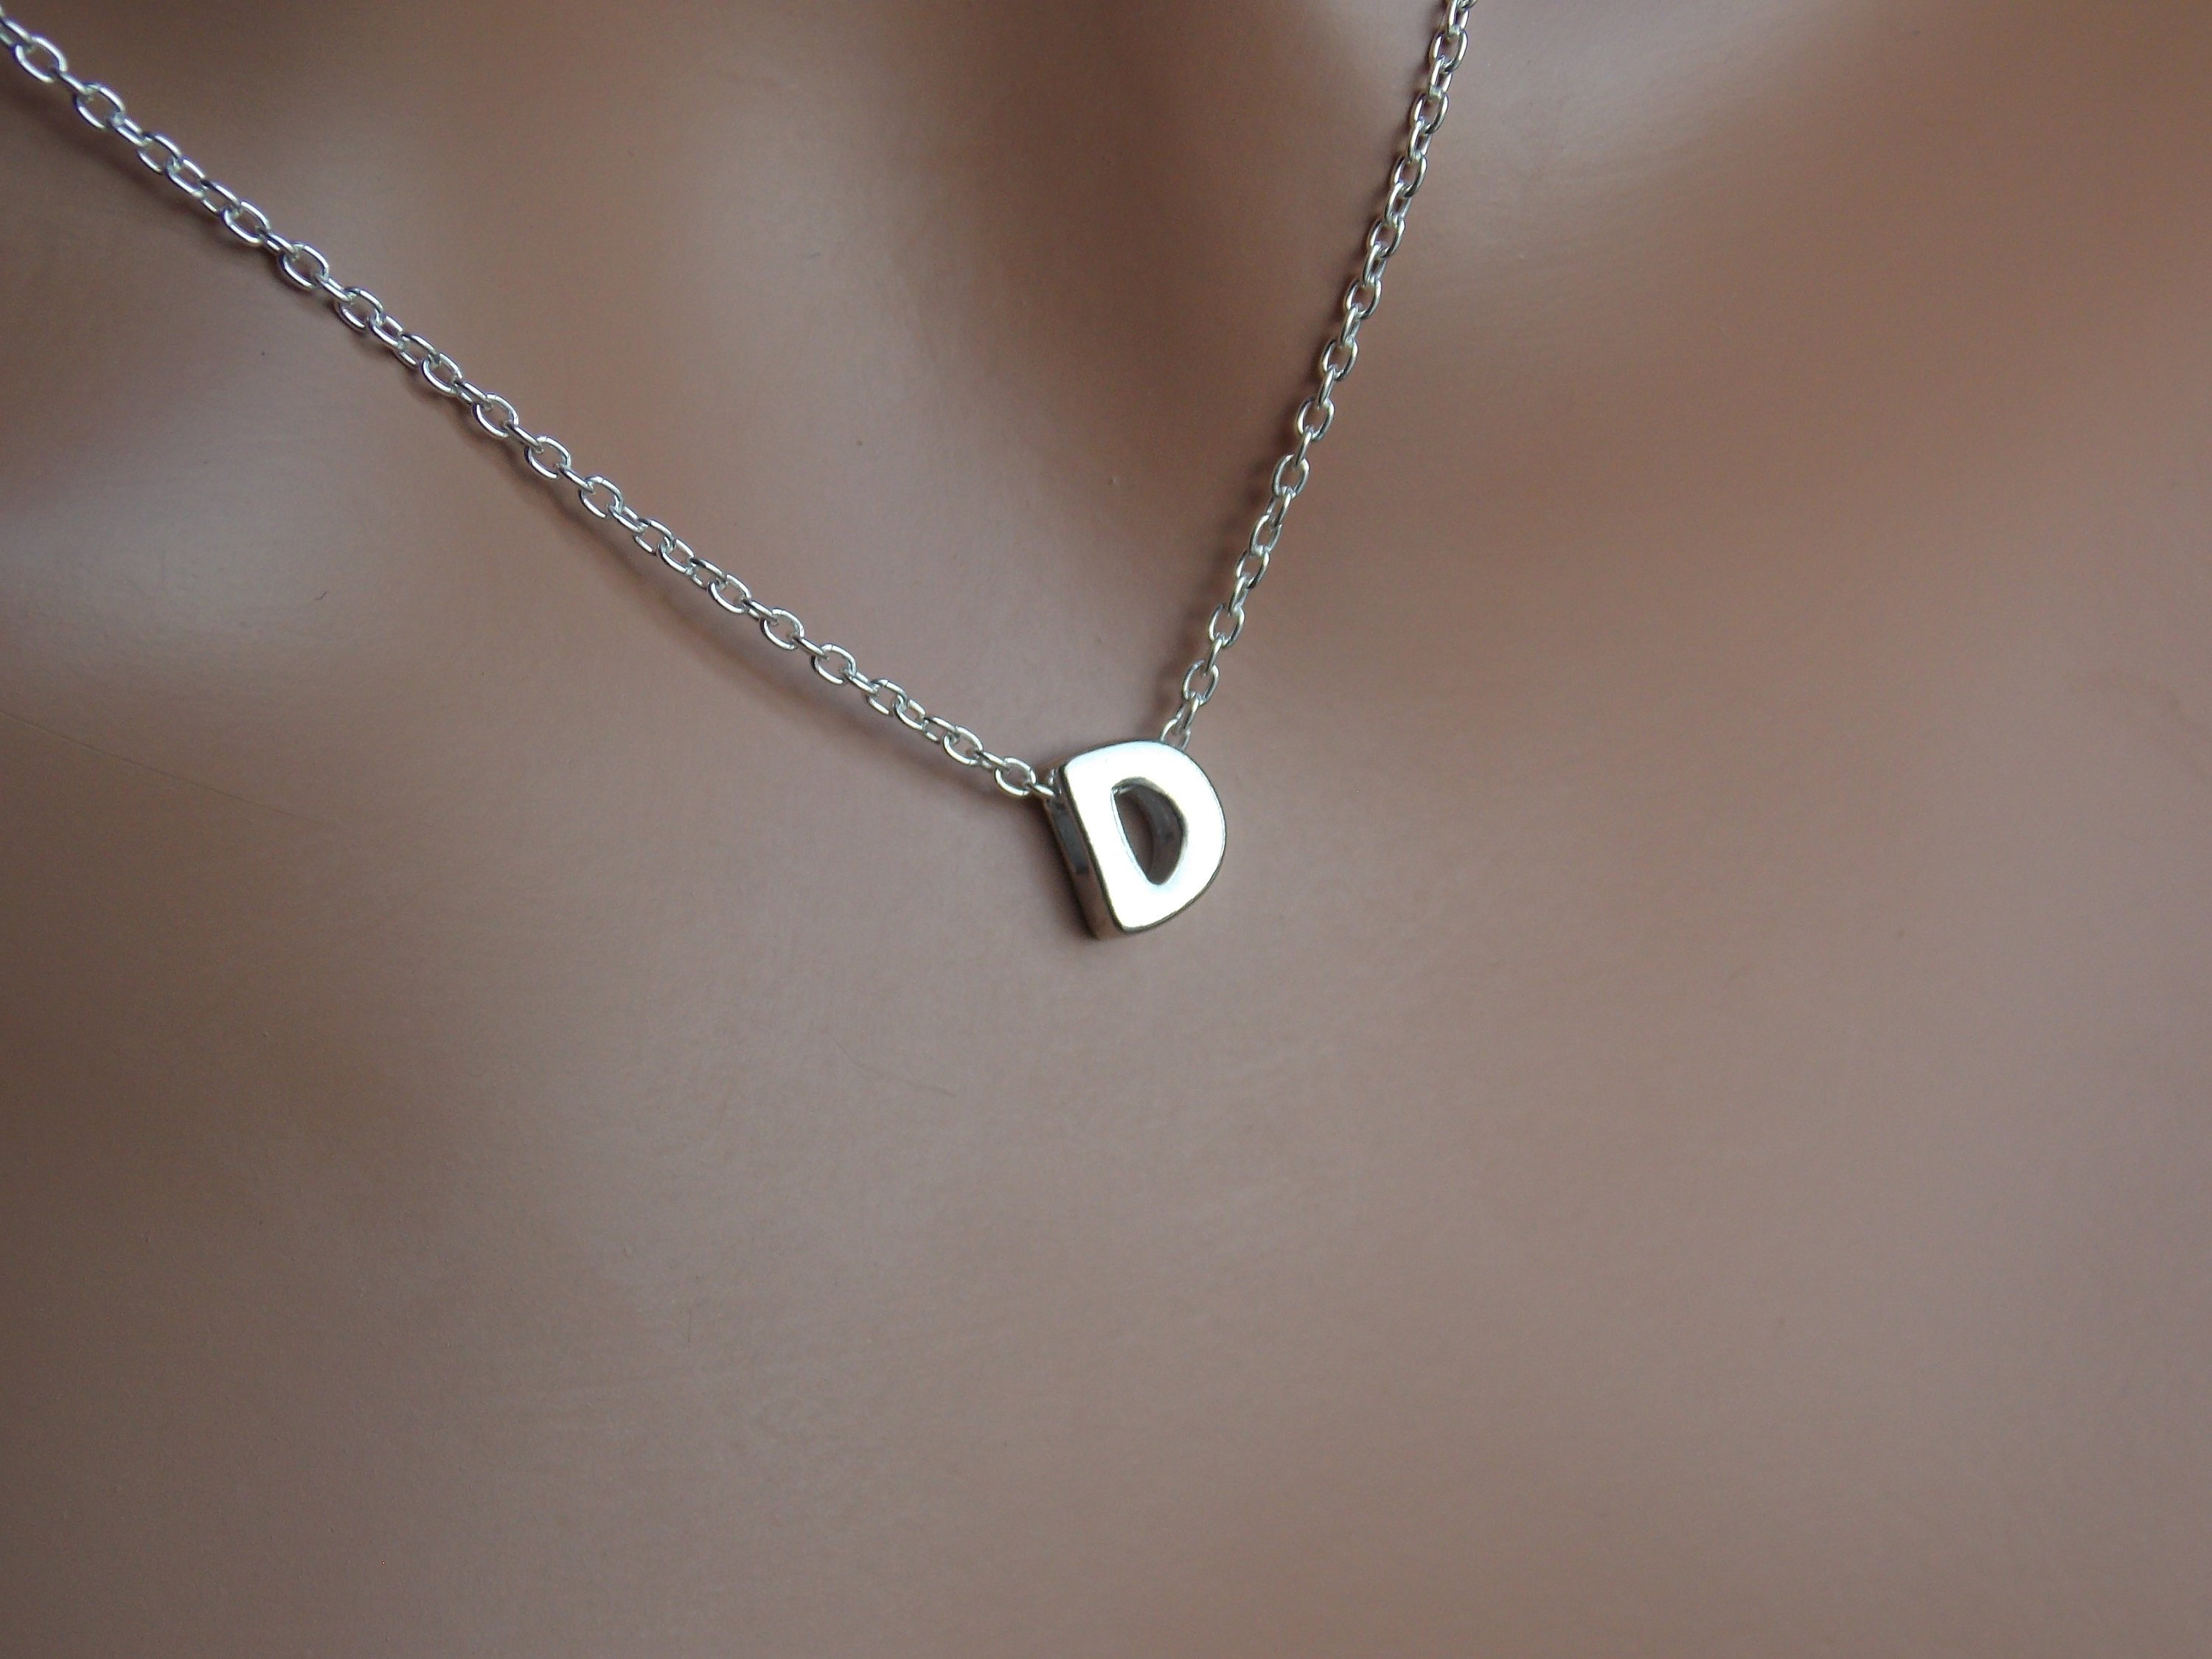 Initial D Necklace, Letter D, Letter D Necklace, Monogram D, Letter D Pendant, D Charm, D Jewelry, Alphabet, Sterling Silver D, Stampsink With Most Recent Letter V Alphabet Locket Element Necklaces (View 8 of 25)